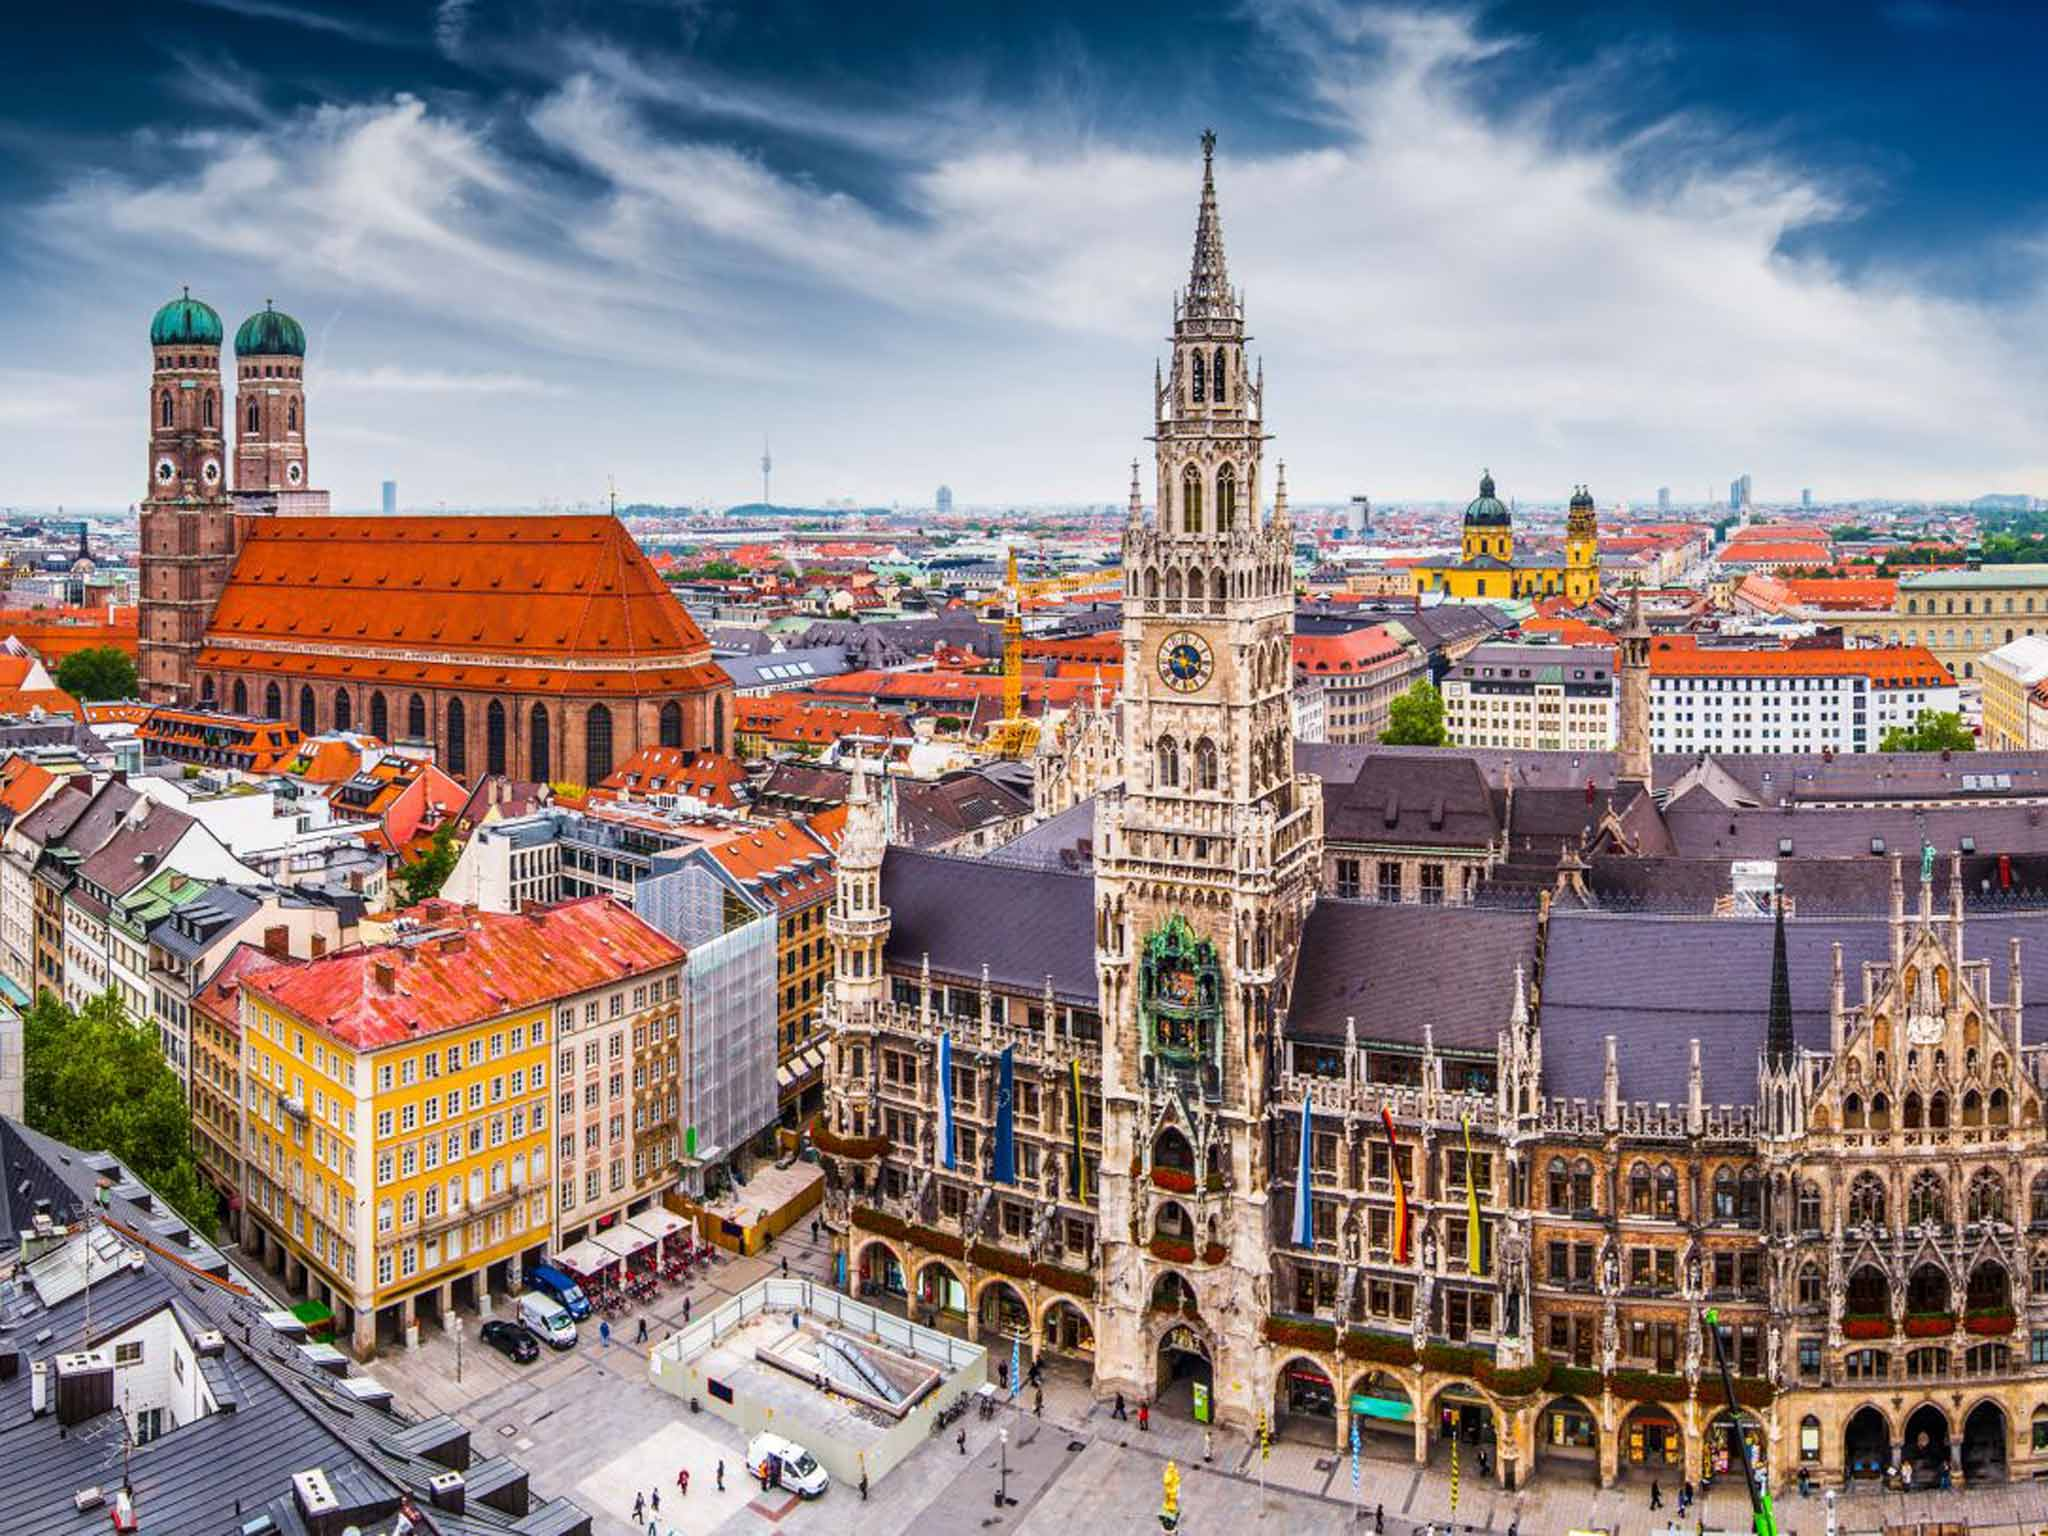 Munich travel tips: Where to go and what to see in 48 hours | The ...